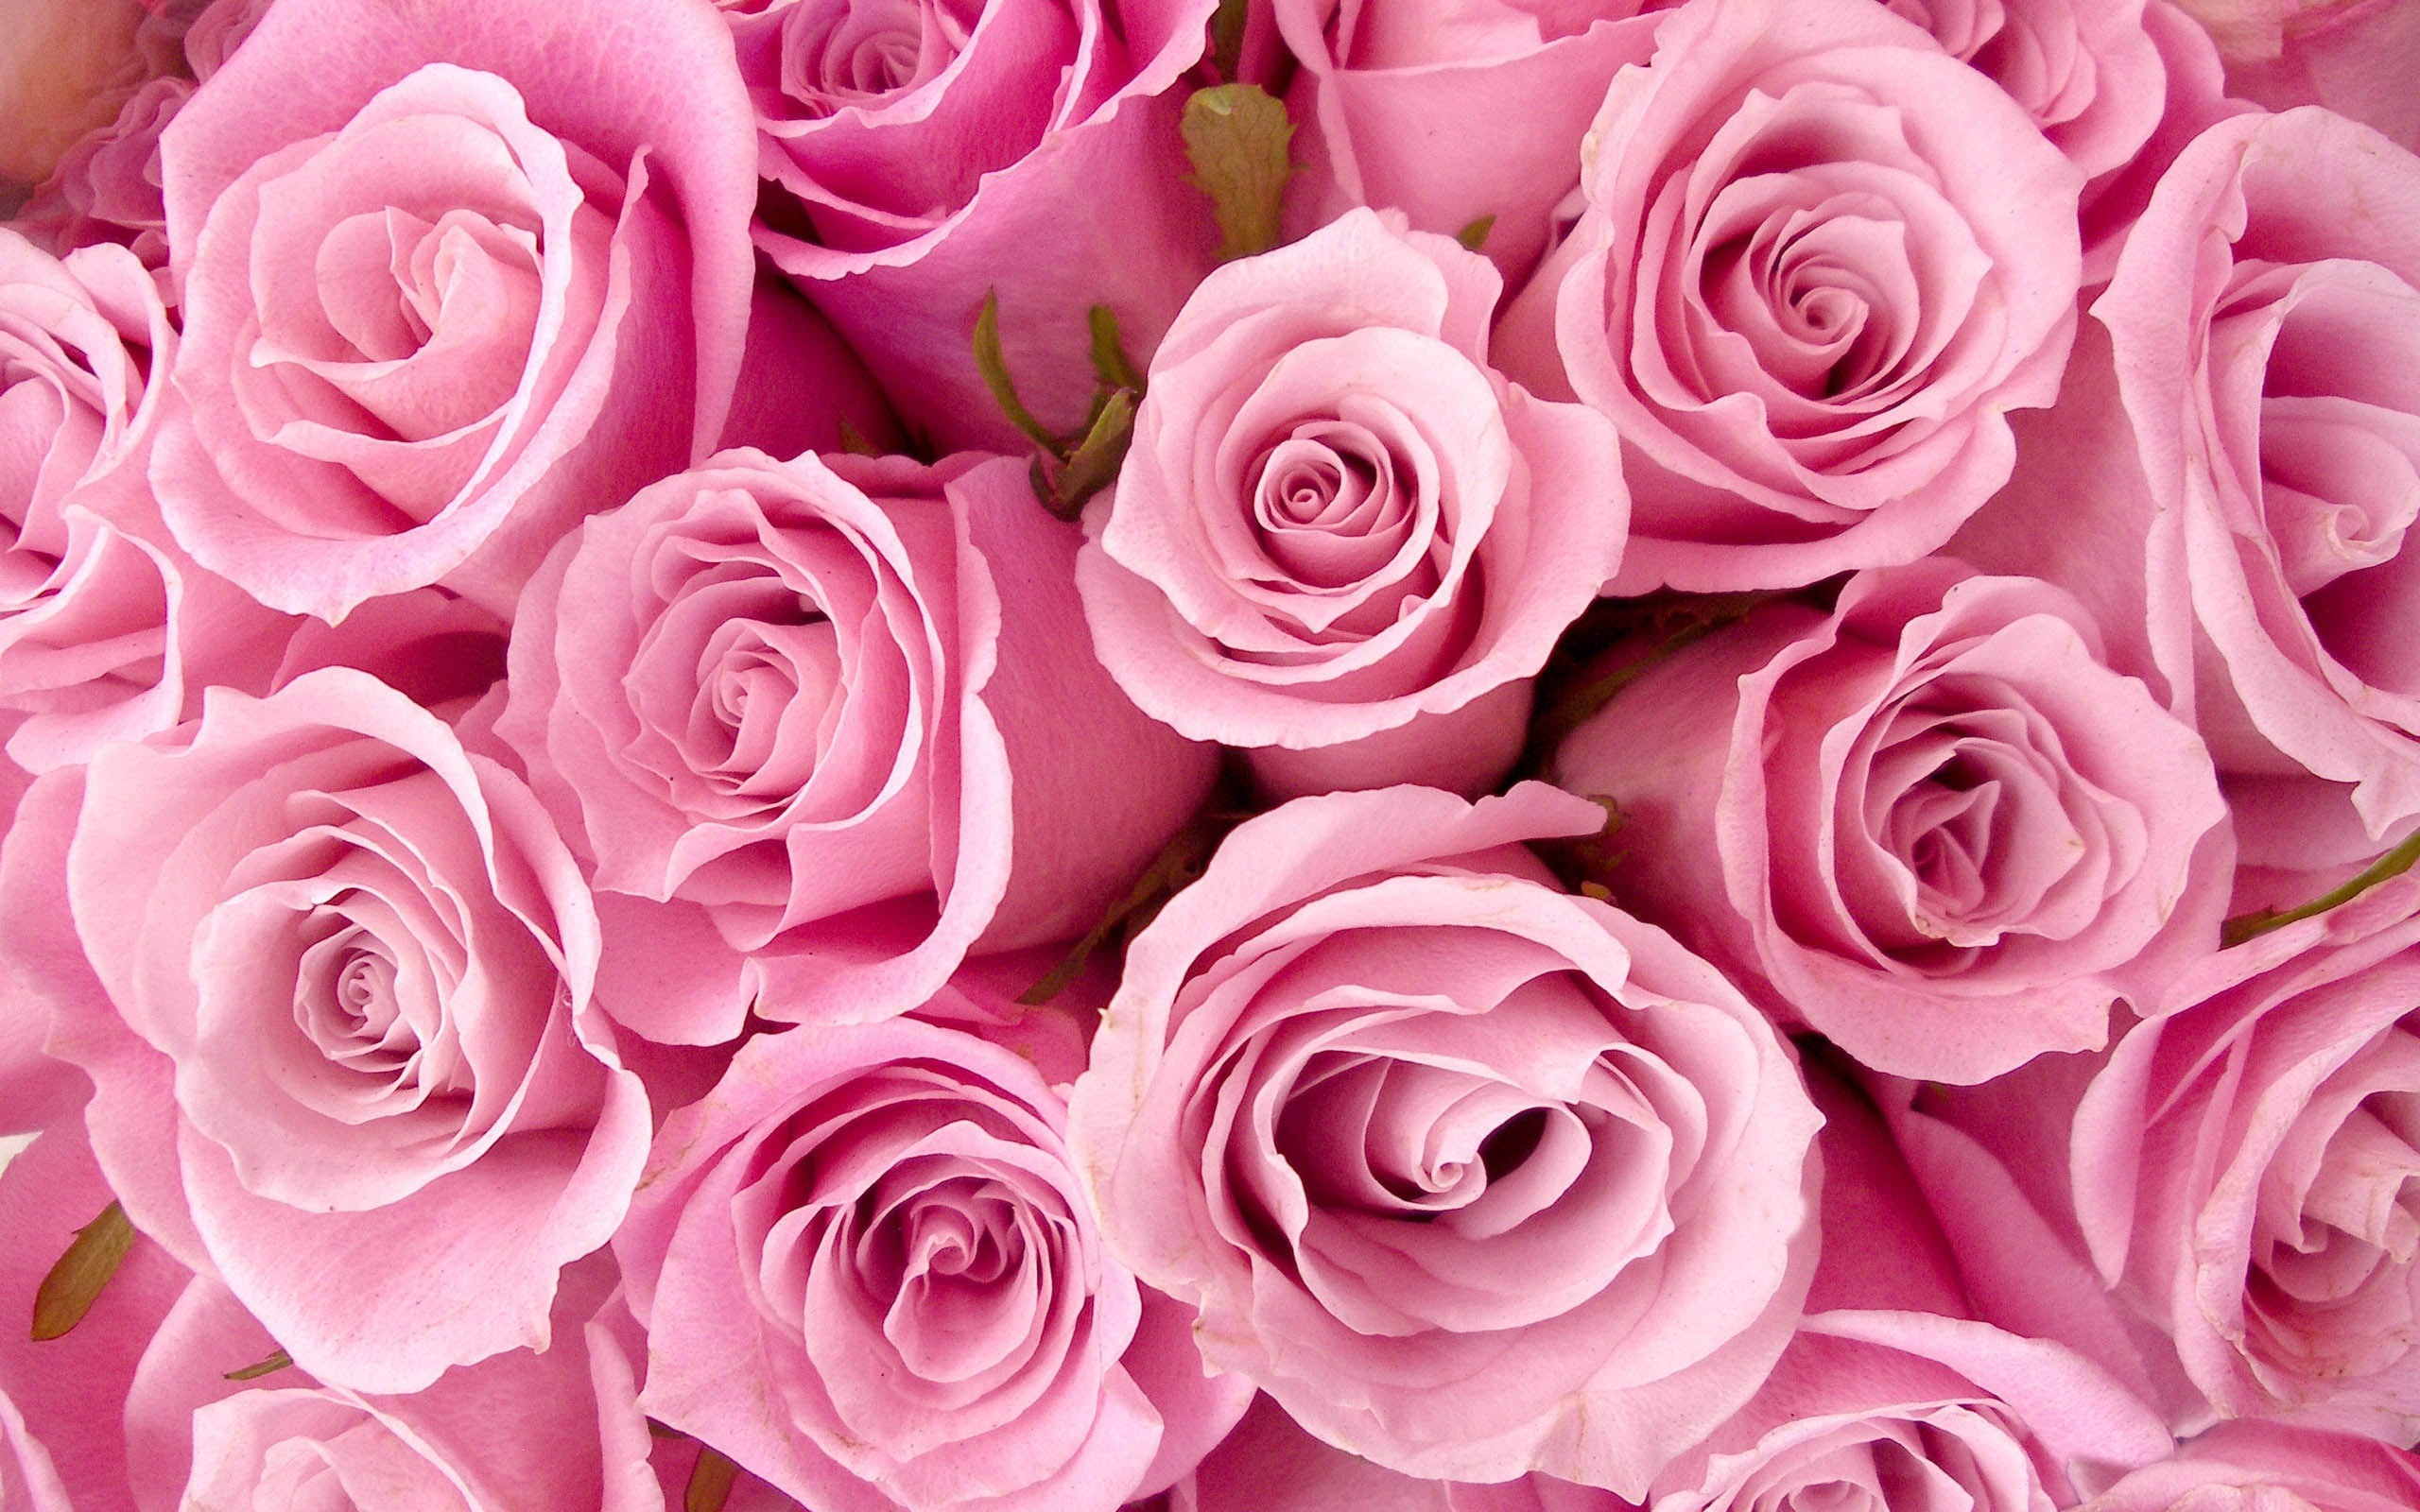 2560x1600 Pink Roses Tumblr - wallpaper.